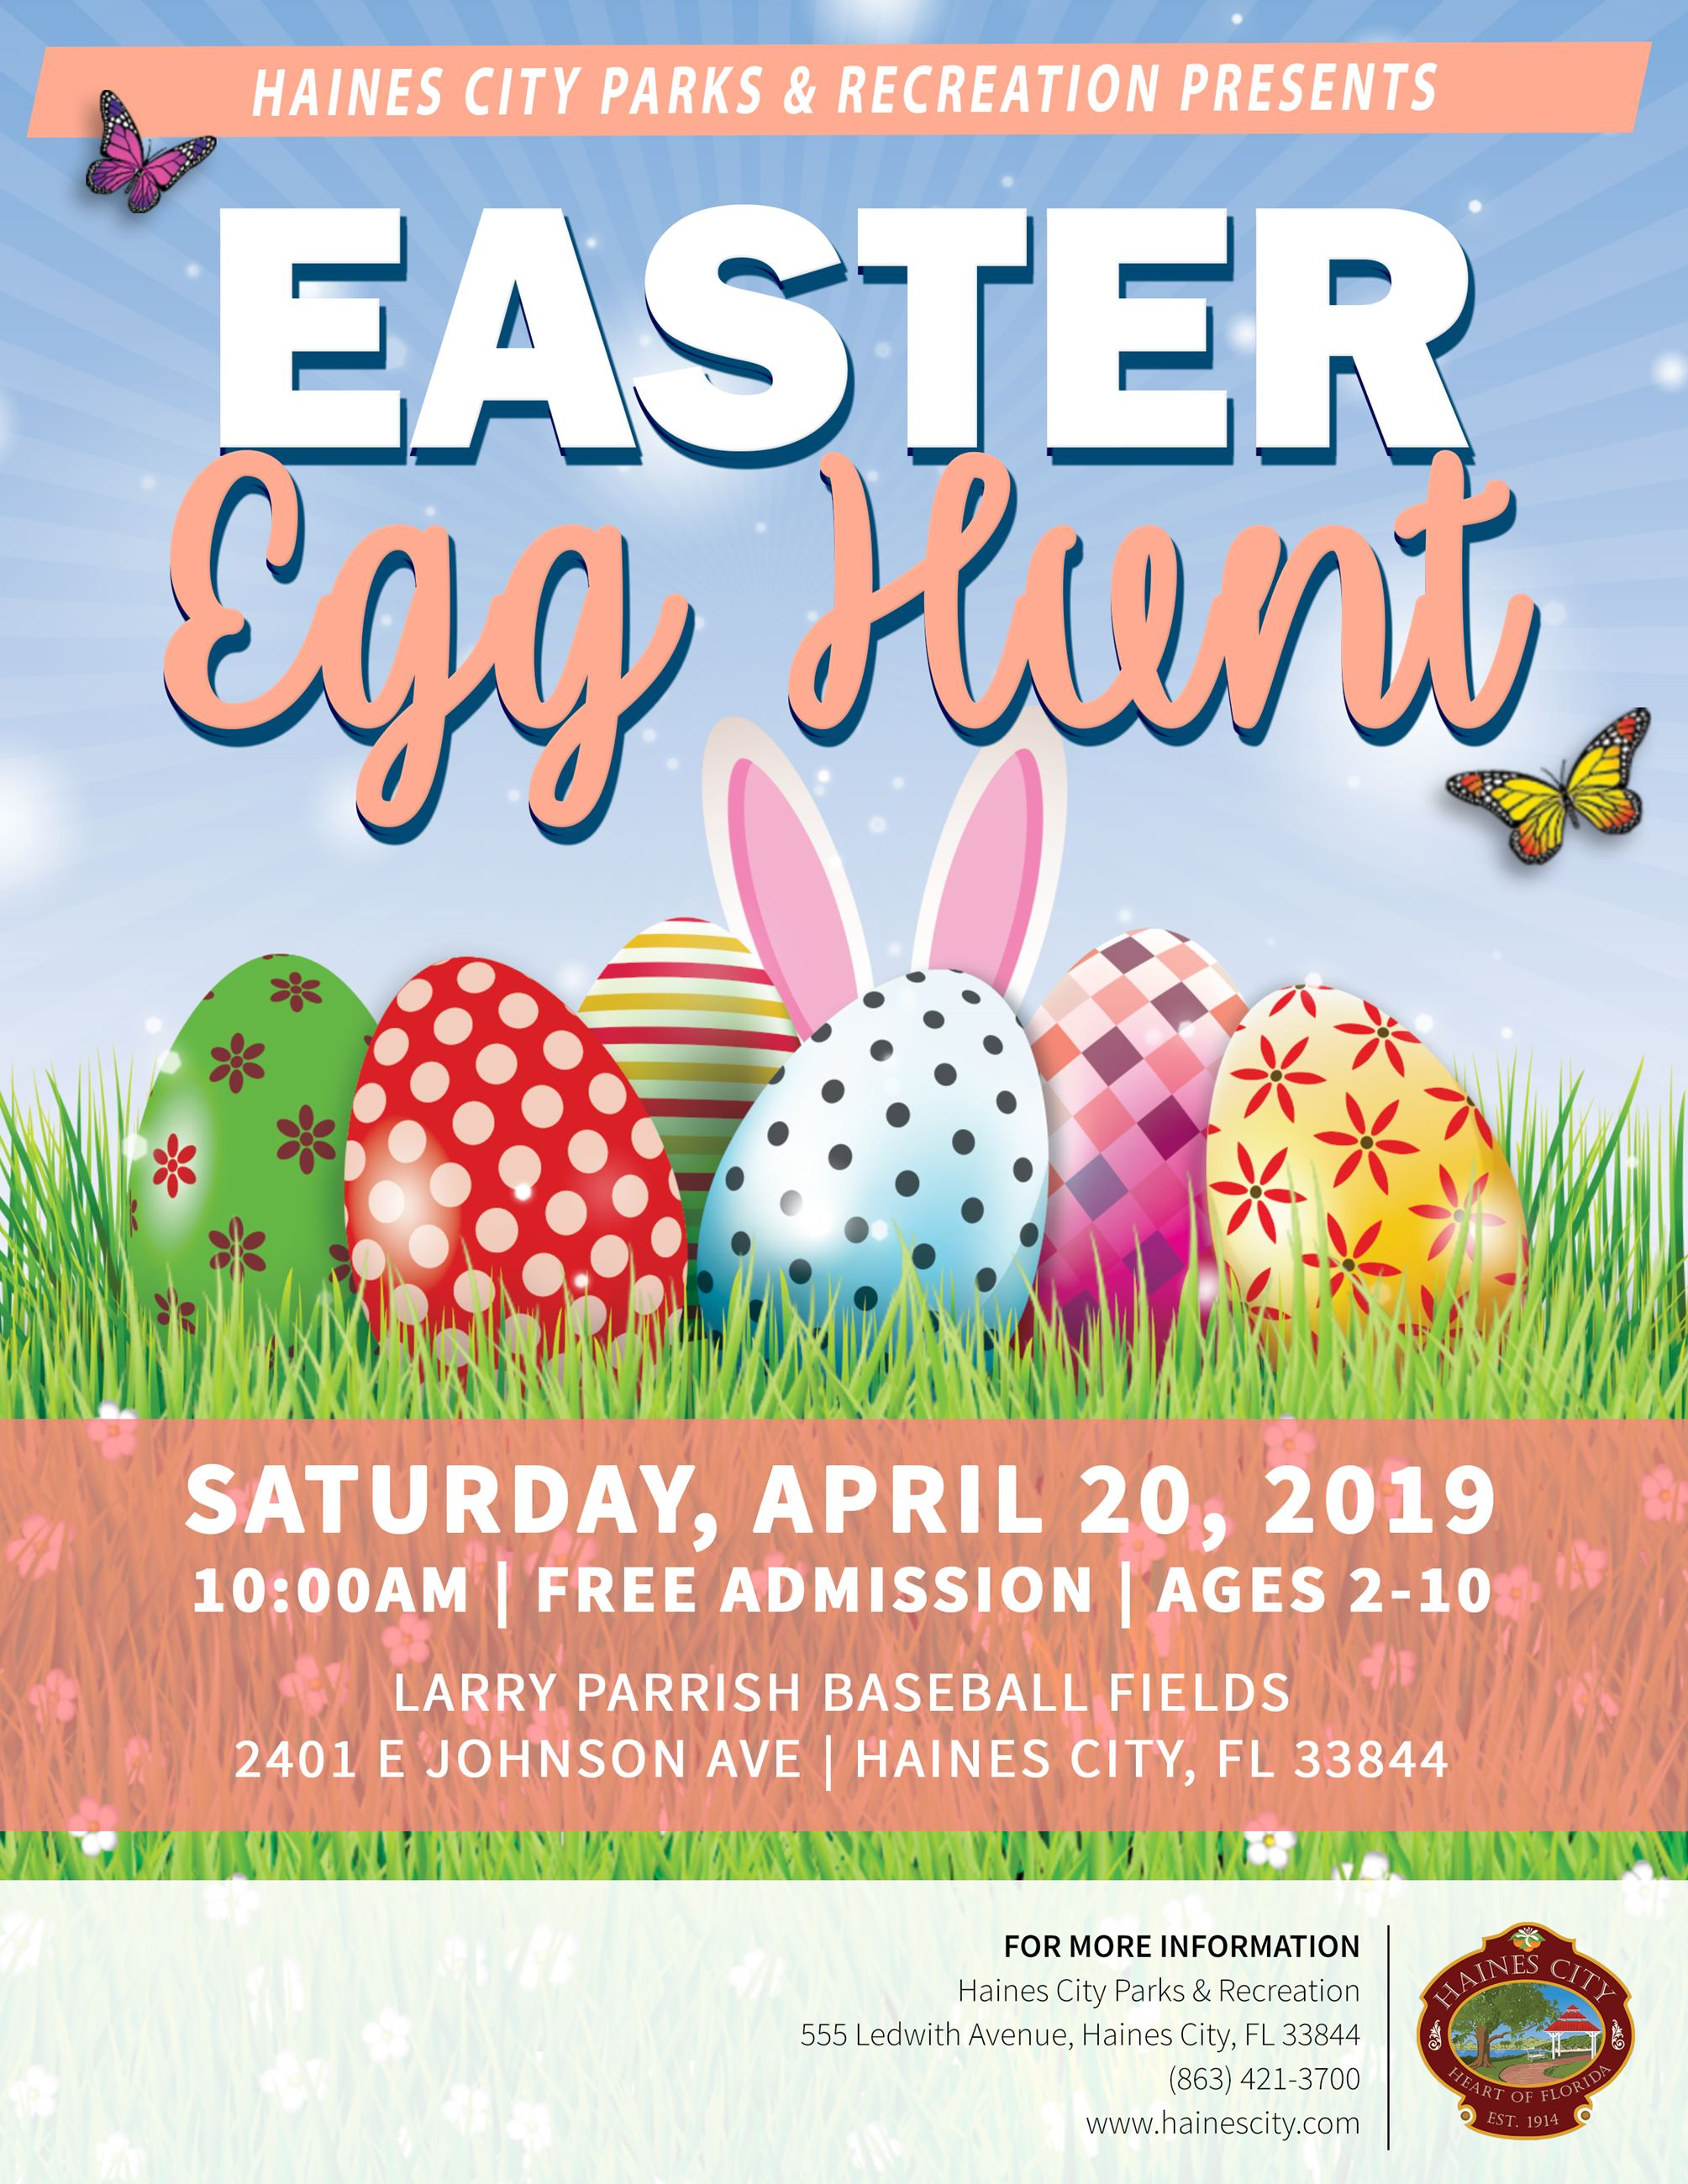 Easter Egg Hunt (flyer Image) - Easter Egg Hunt happening Saturday April 20, 2019.  Starts at 10 AM